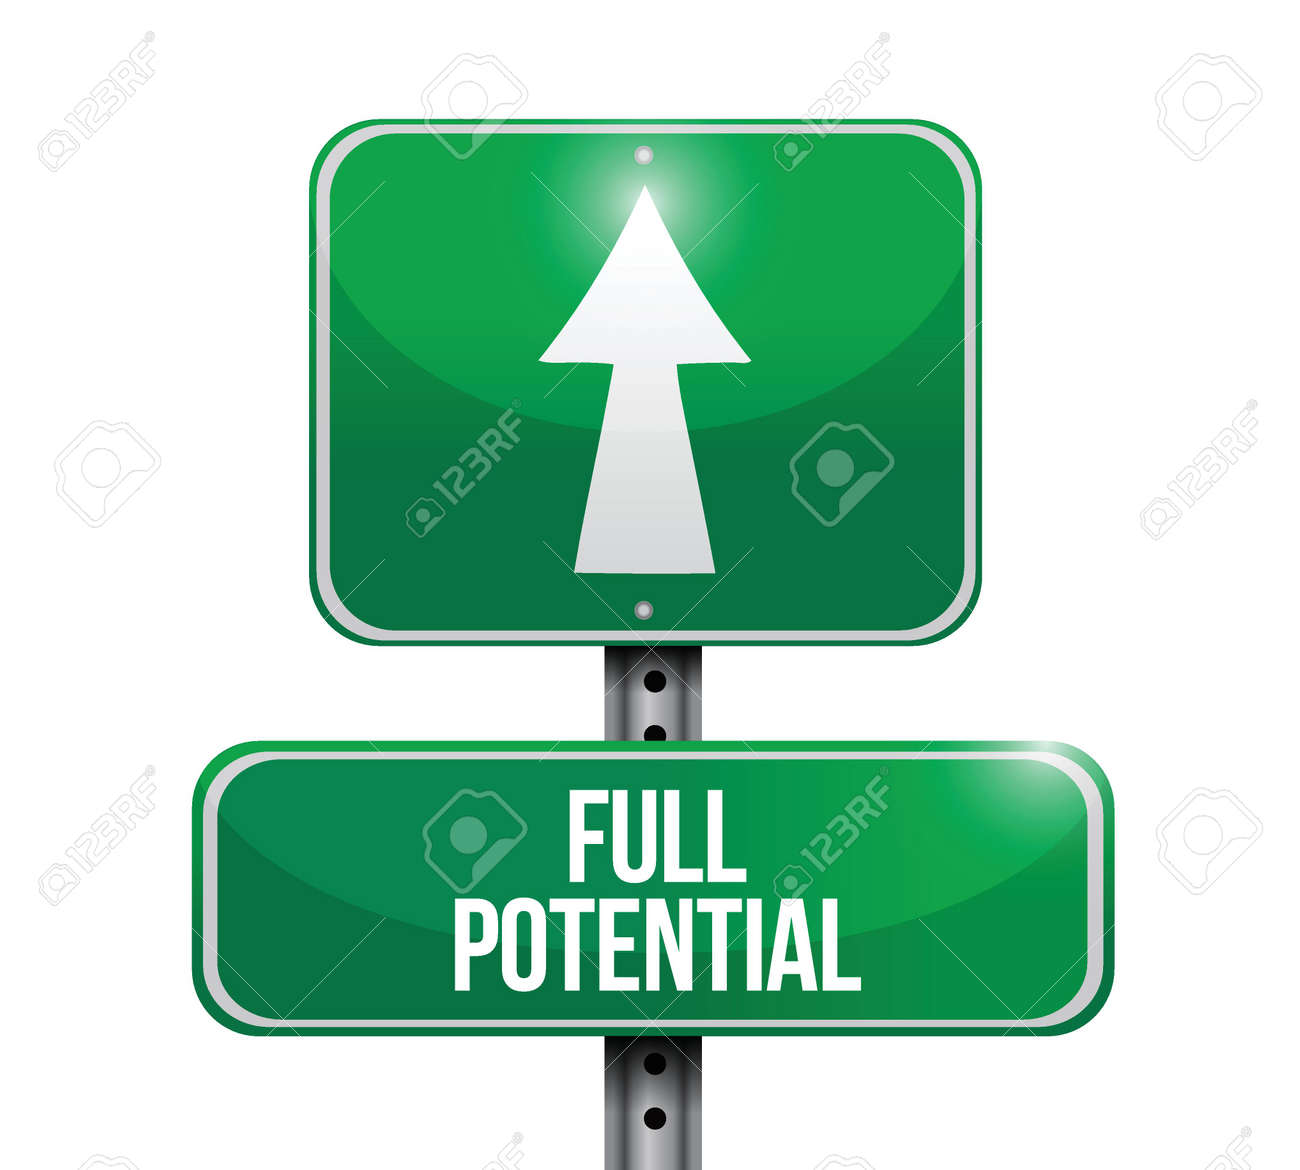 full potential road sign illustration design over a white background Stock Vector - 23964527